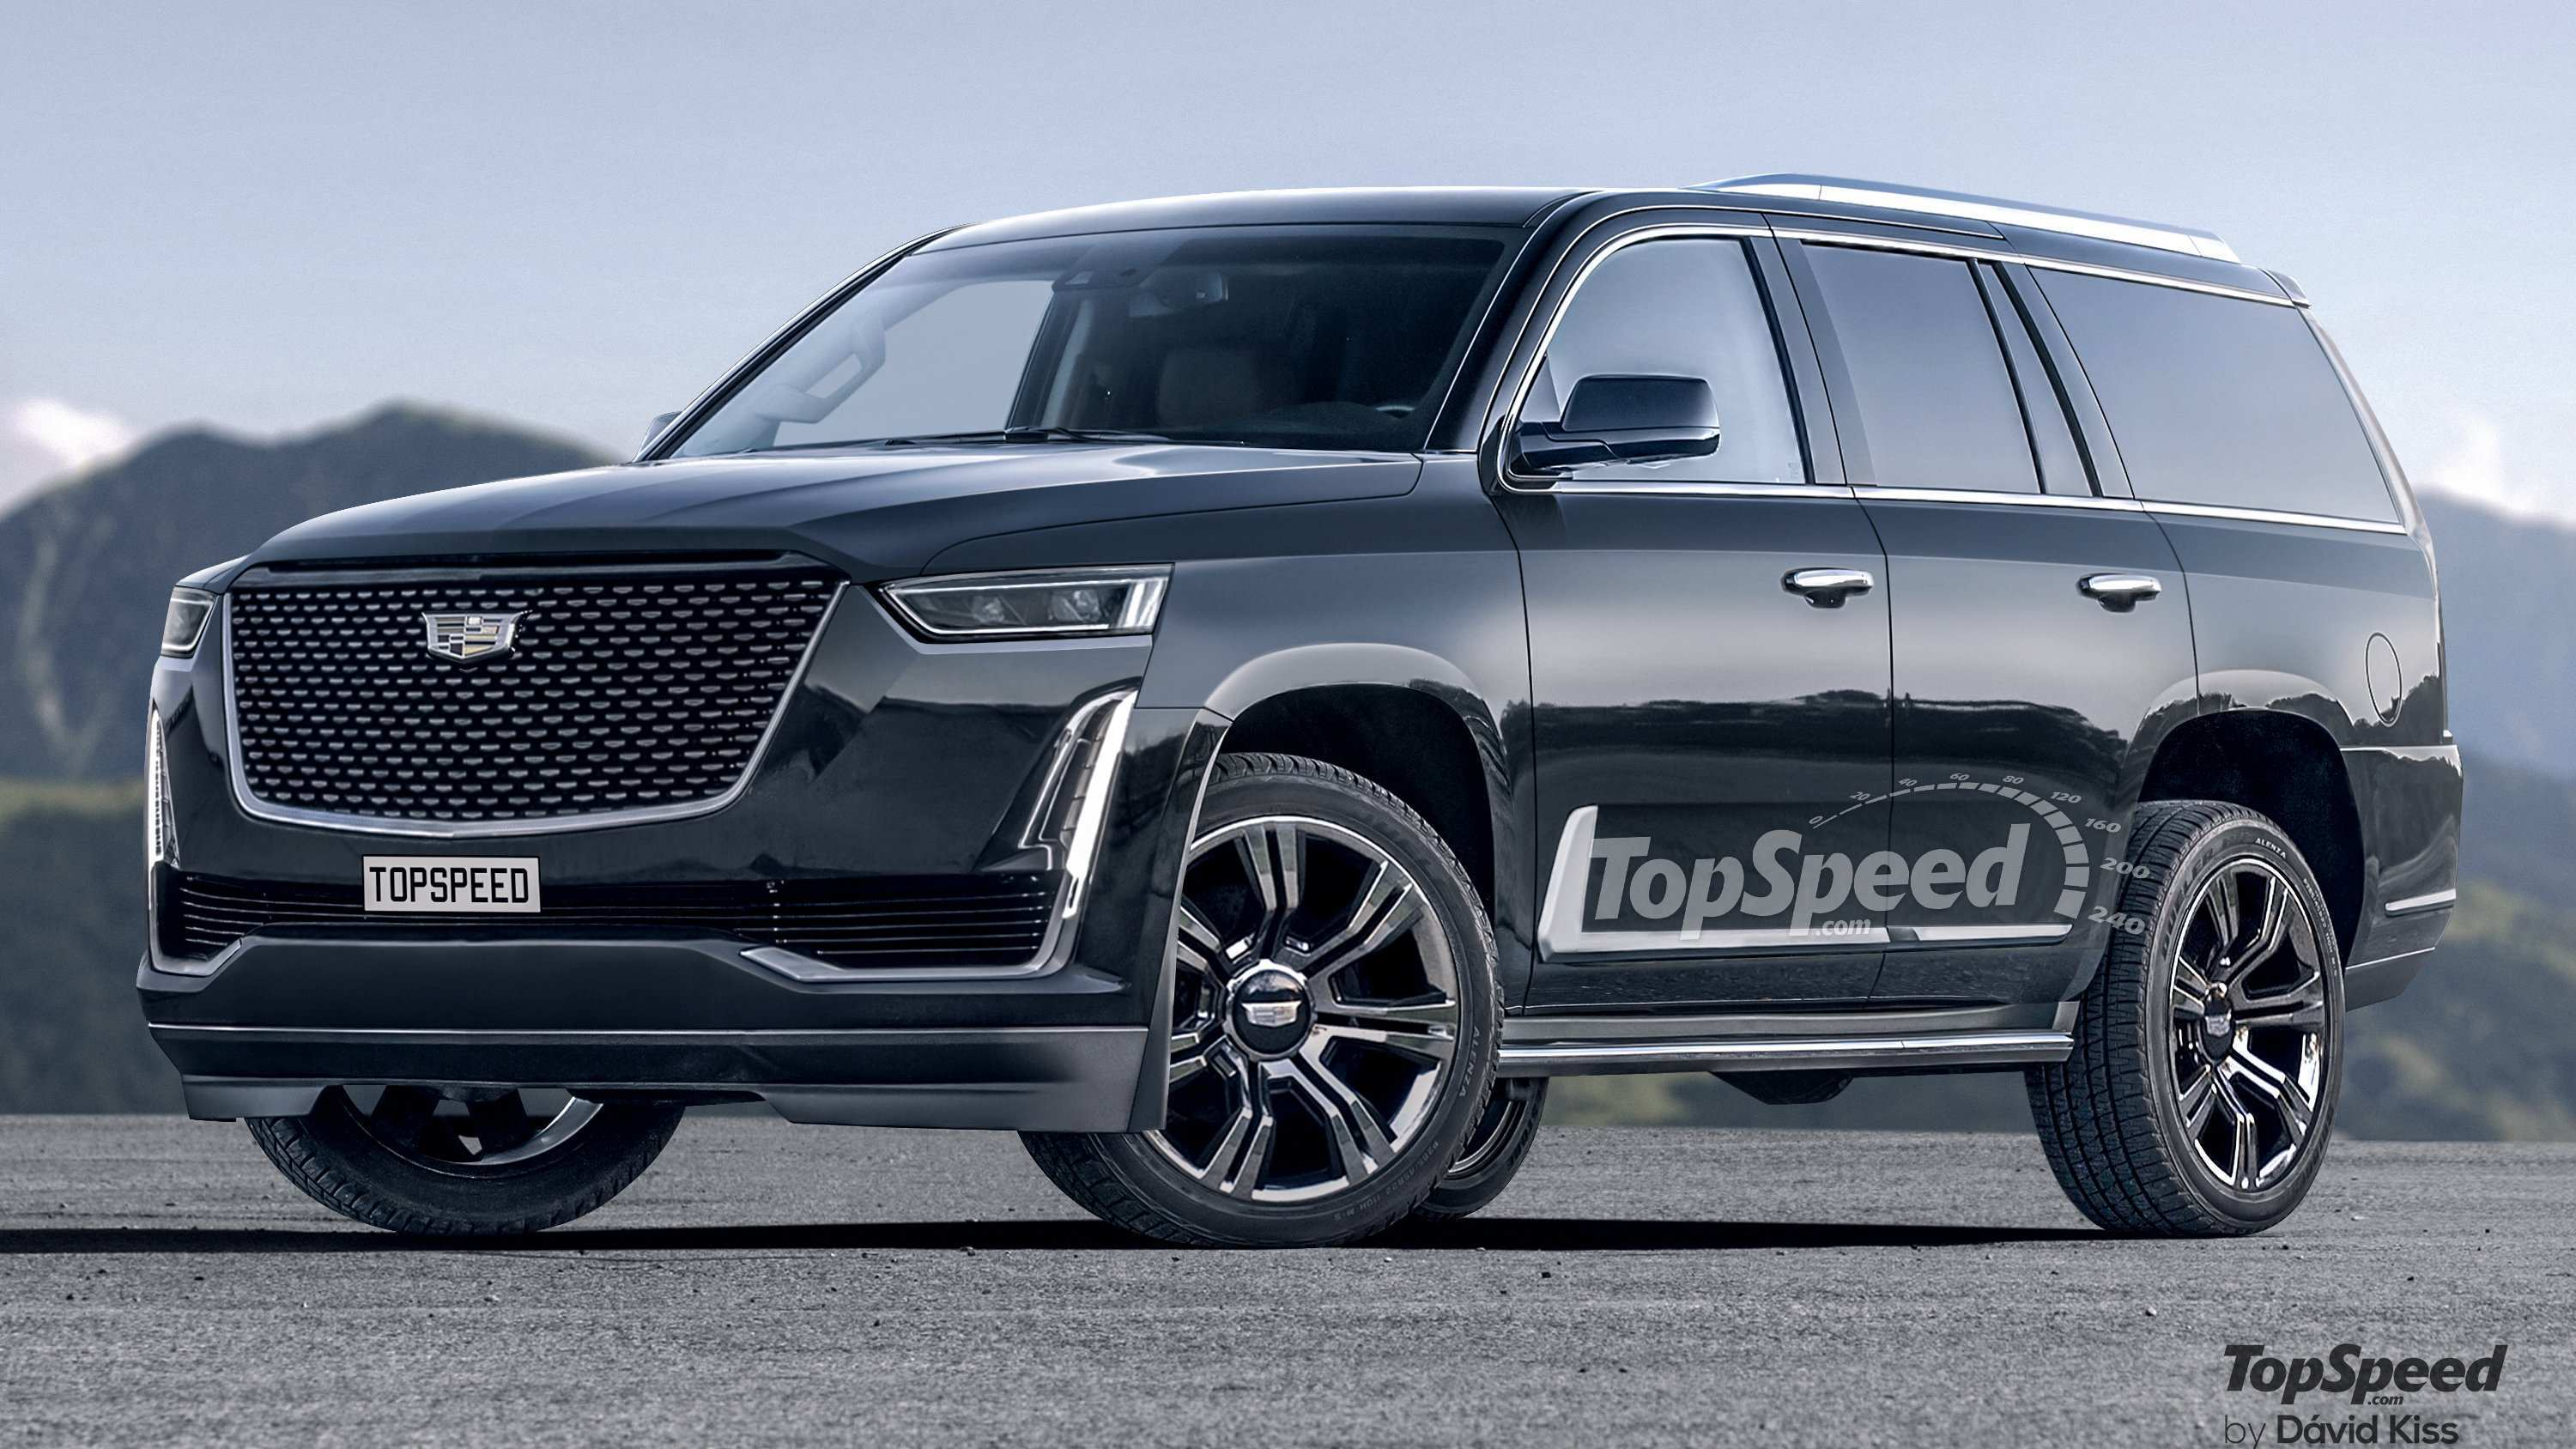 98 Gallery of 2020 Cadillac Escalade New Review with 2020 Cadillac Escalade